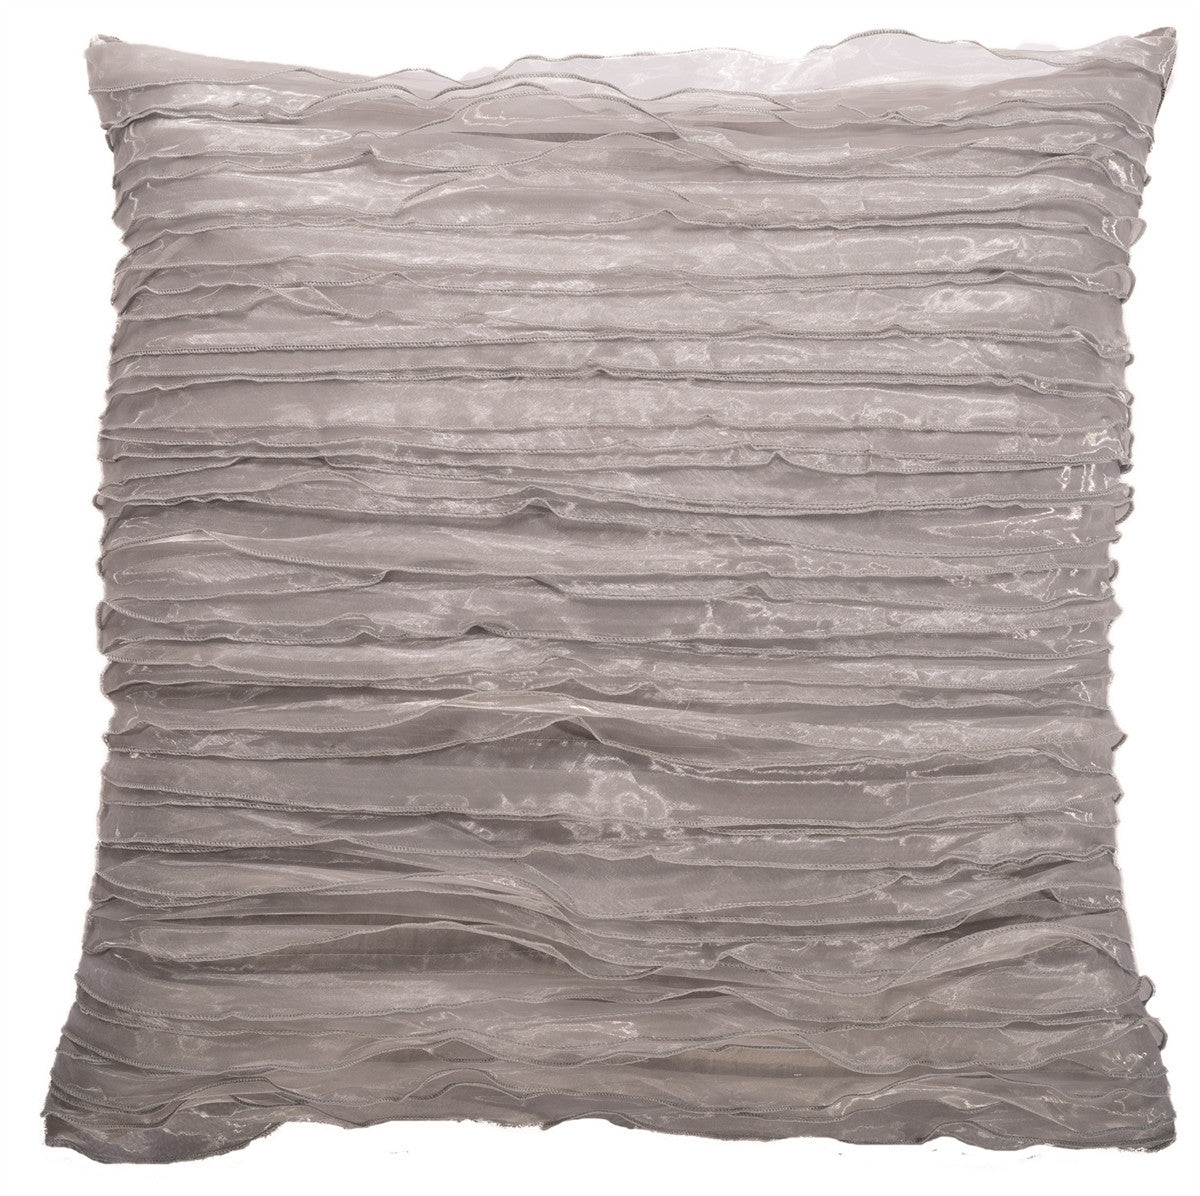 DV Kap Home - Ruffles Toss Pillow